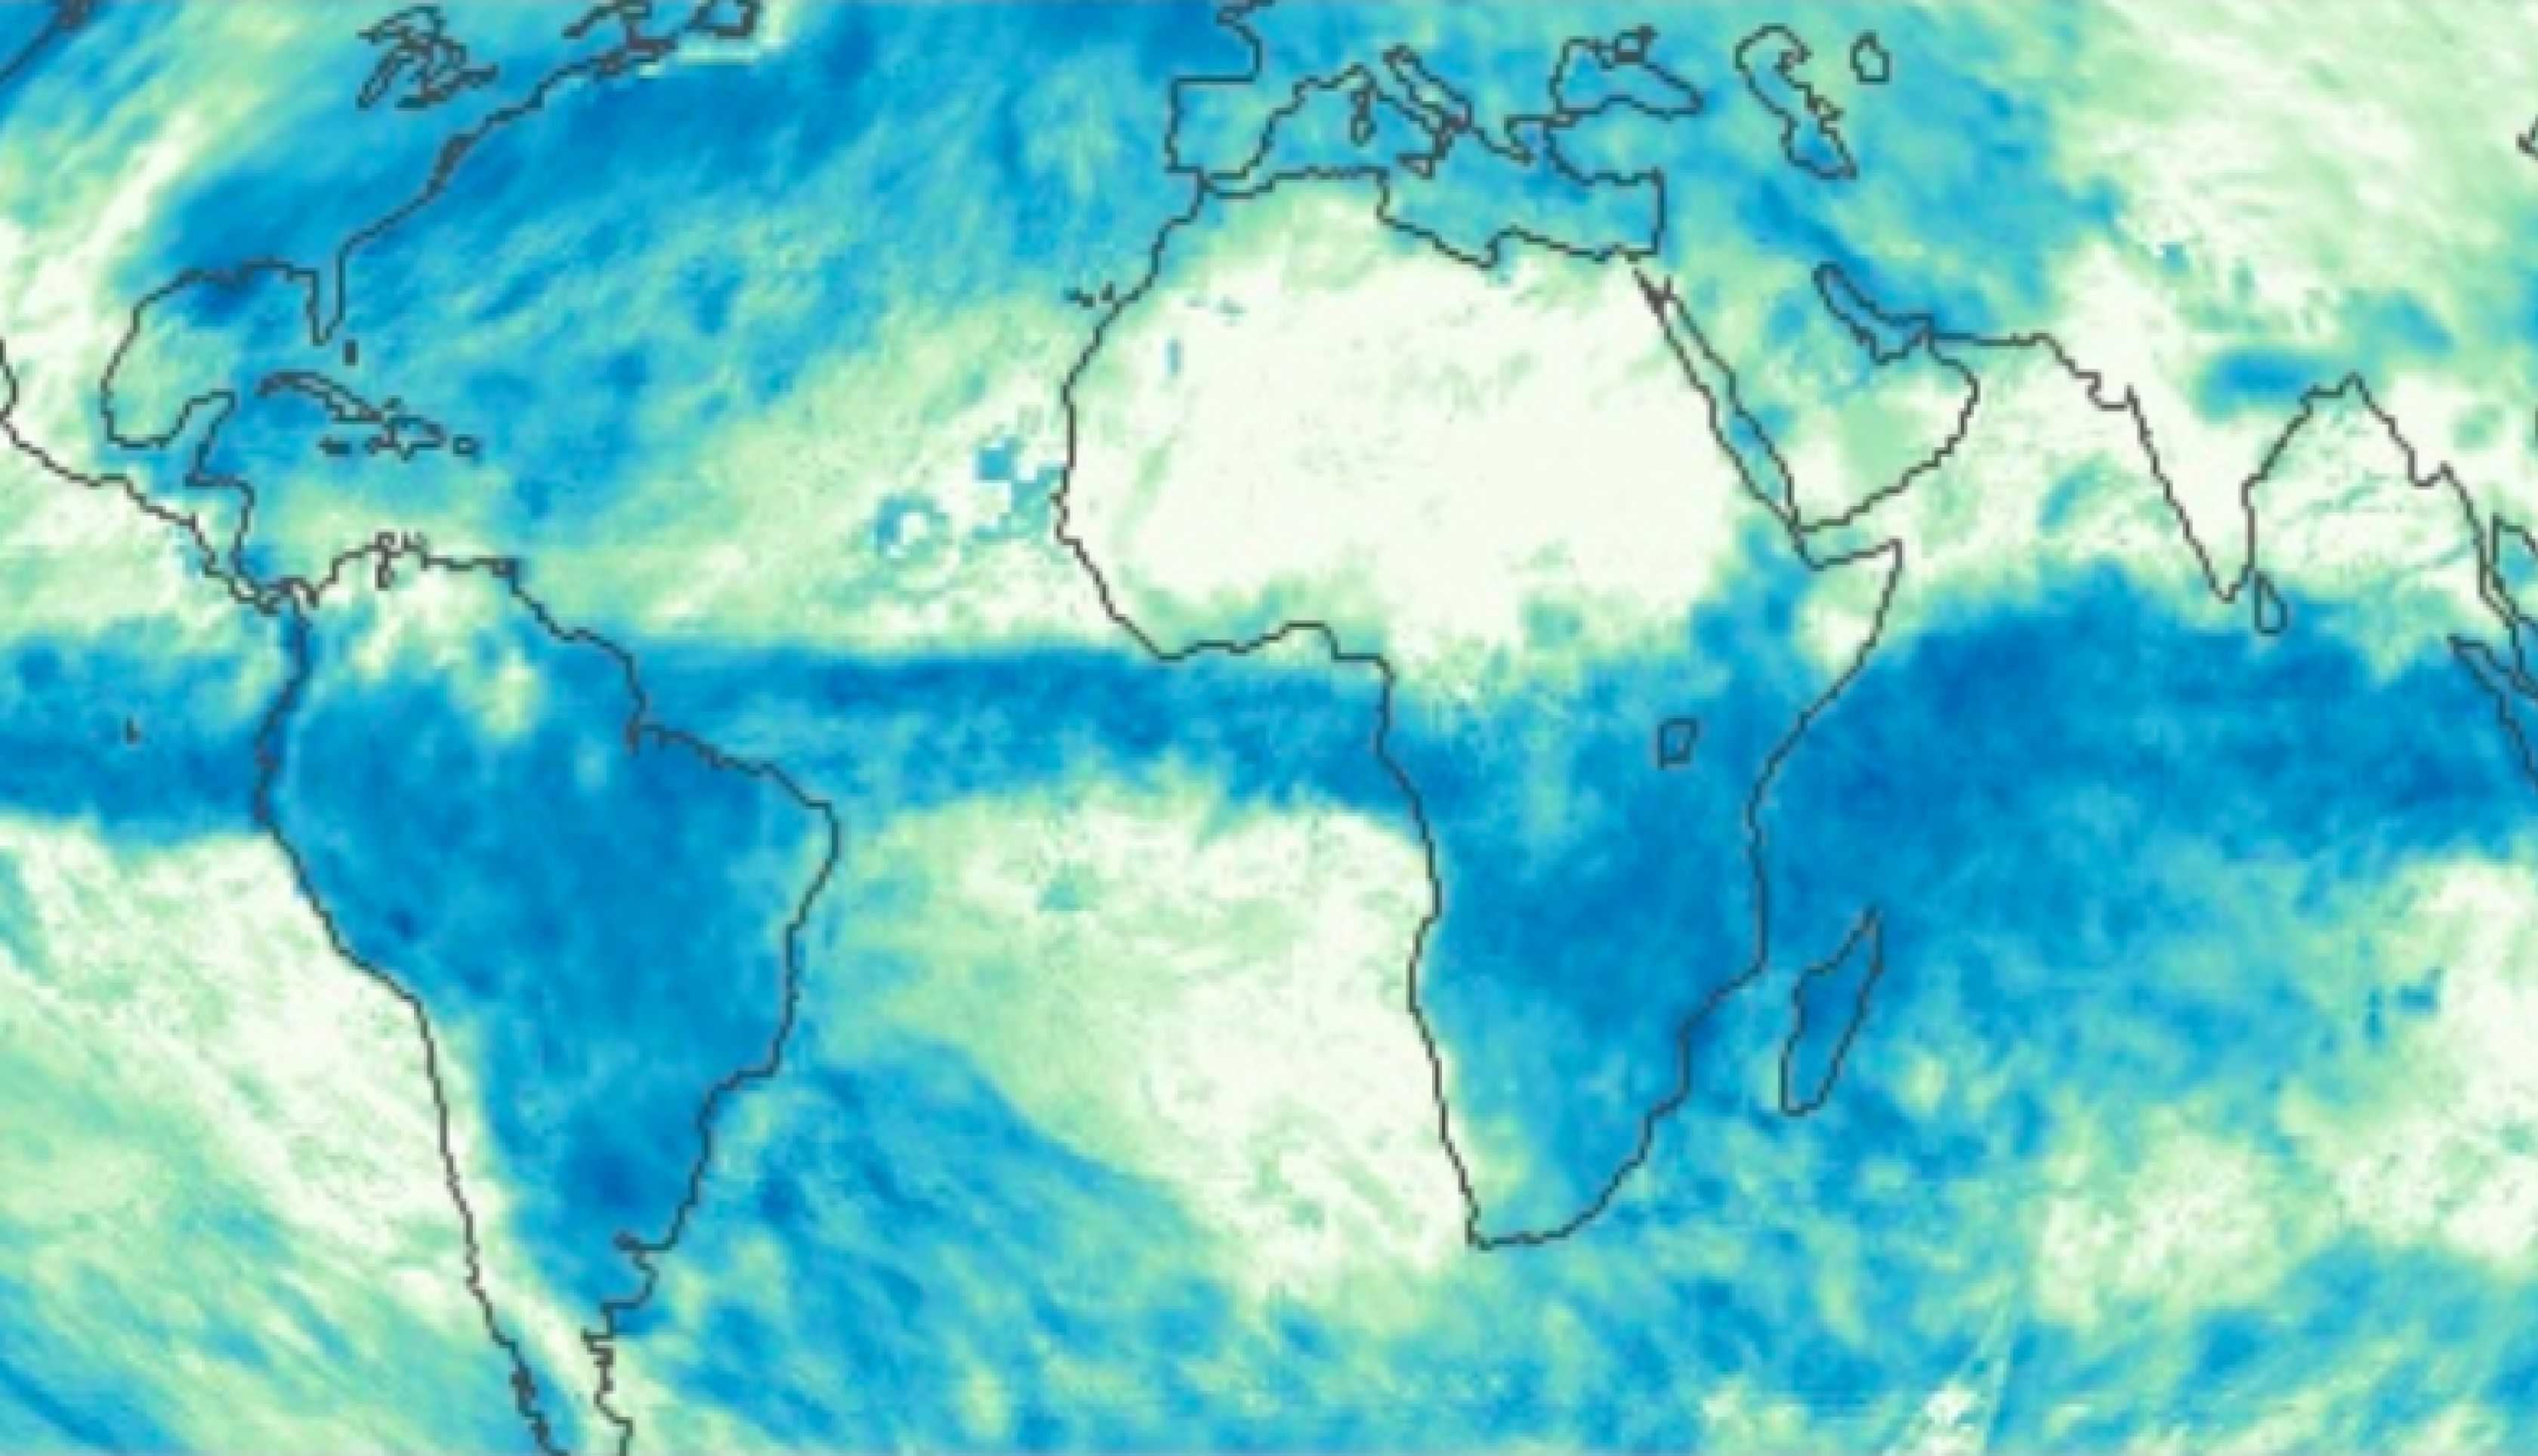 Scientific image of total rainfall globally